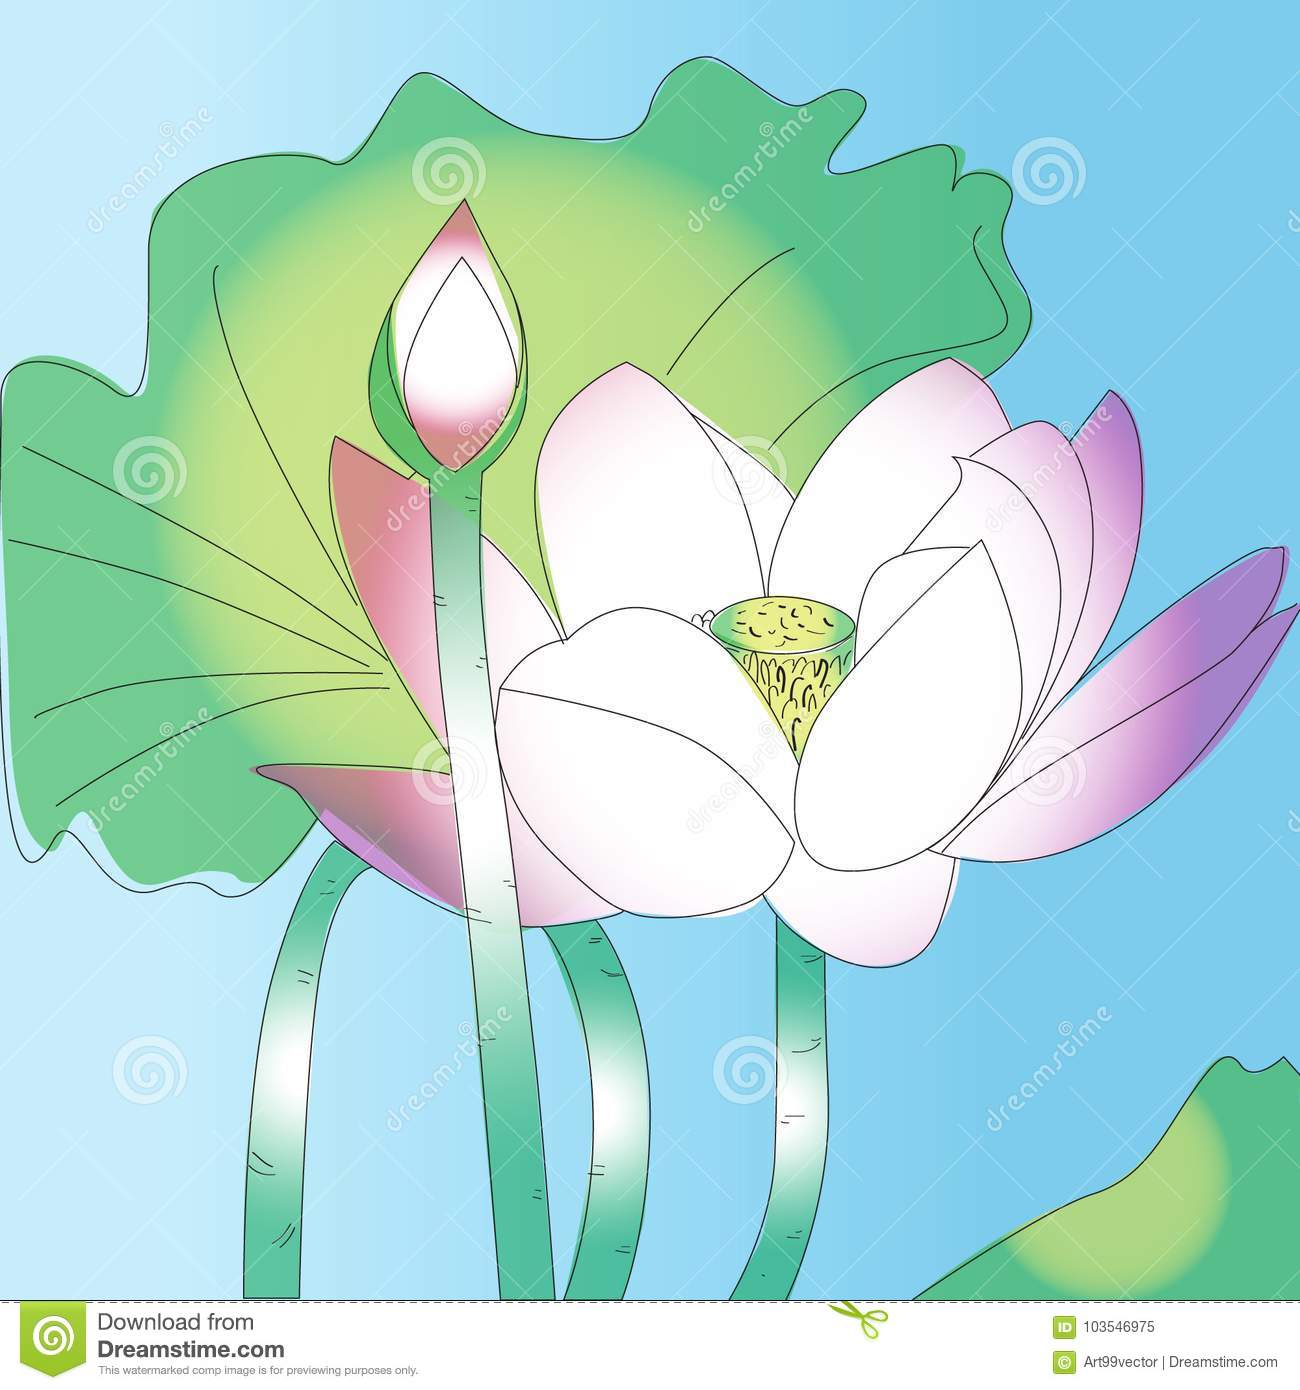 Lotus flower sketch art and nature pink soft stock illustration download lotus flower sketch art and nature pink soft stock illustration illustration of pink izmirmasajfo